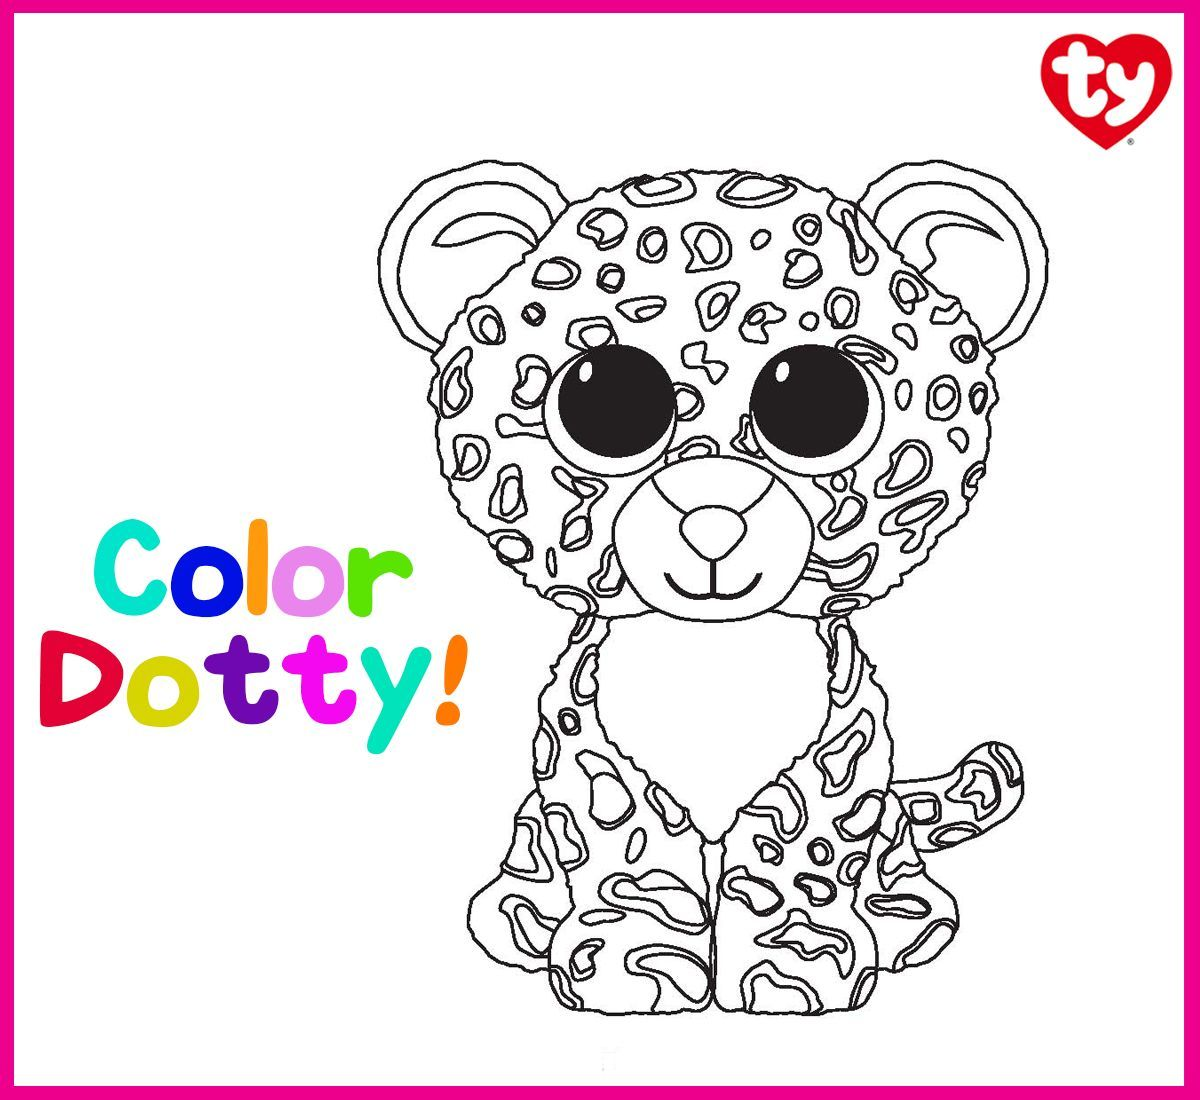 Beanie Boo Coloring Pages Featuring Favorite The Stuffed Animals